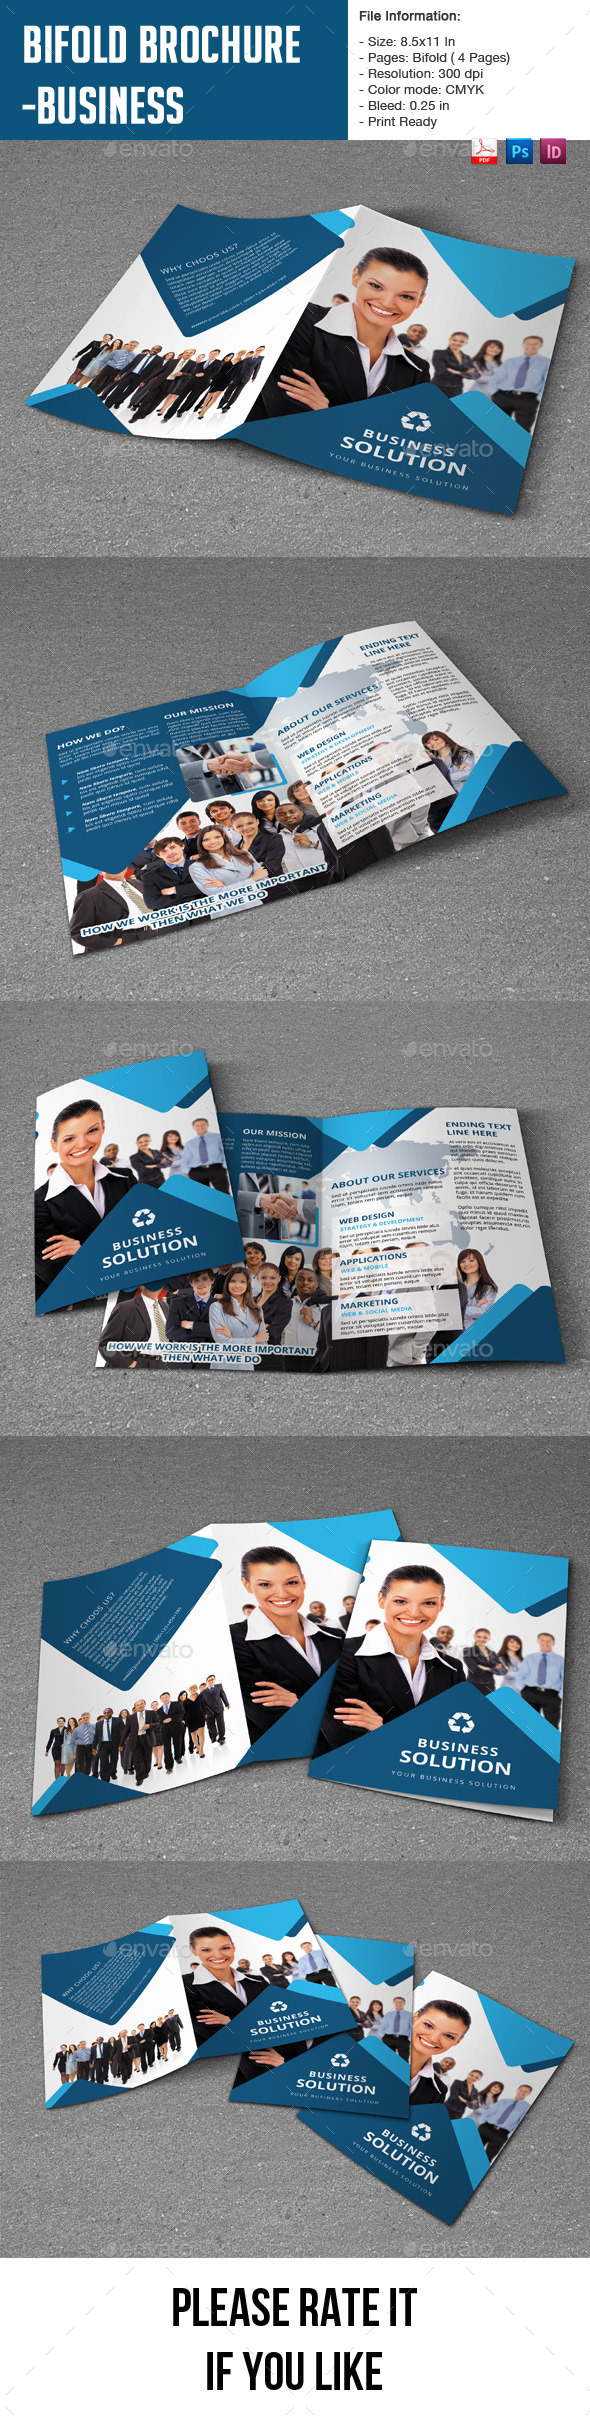 GraphicRiver Bifold Brochure for Business 9338794